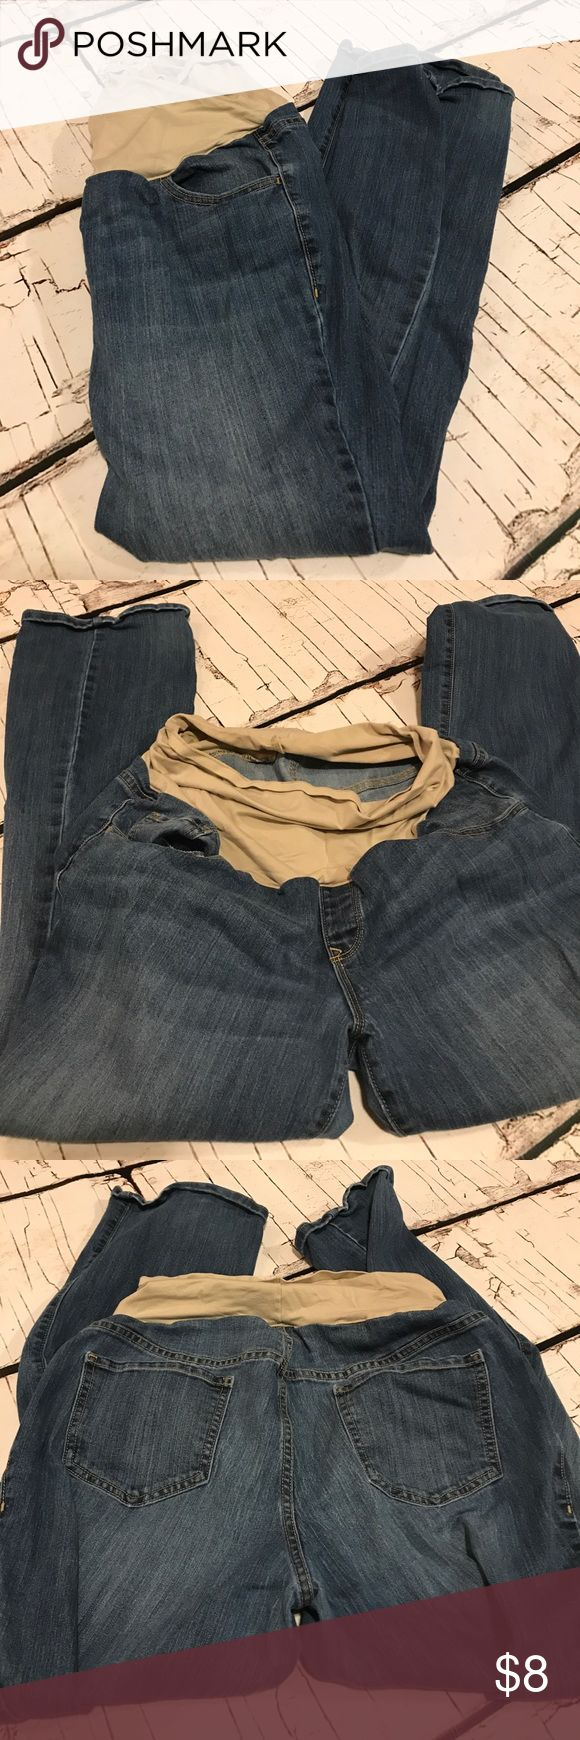 Old navy maternity Well loved but still have life left in them! Old Navy Jeans Boot Cut